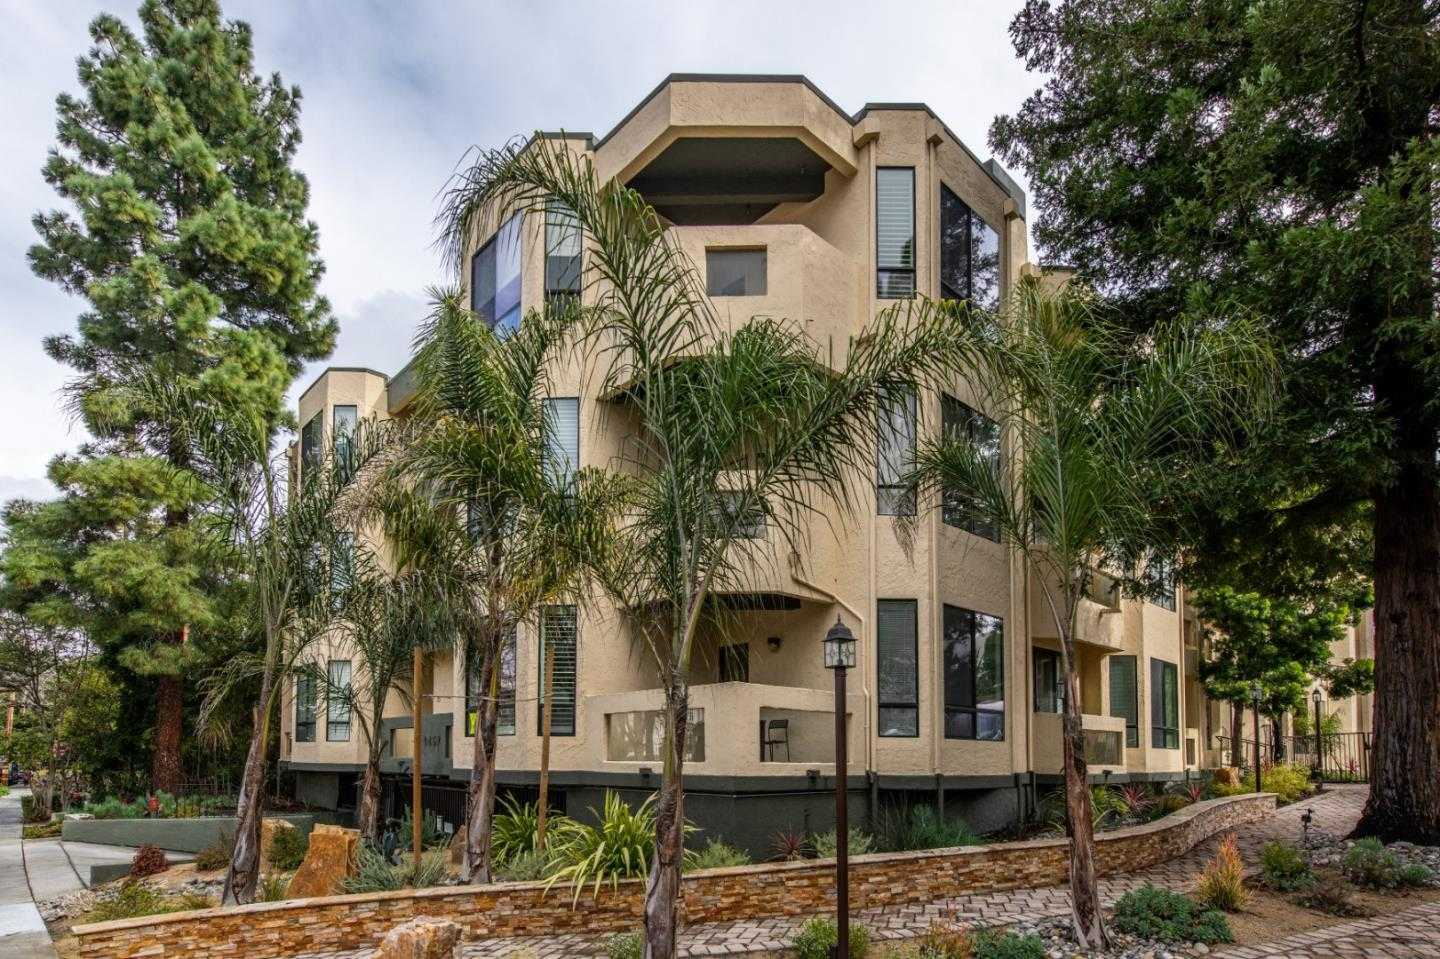 $1,595,000 - 2Br/2Ba -  for Sale in Burlingame